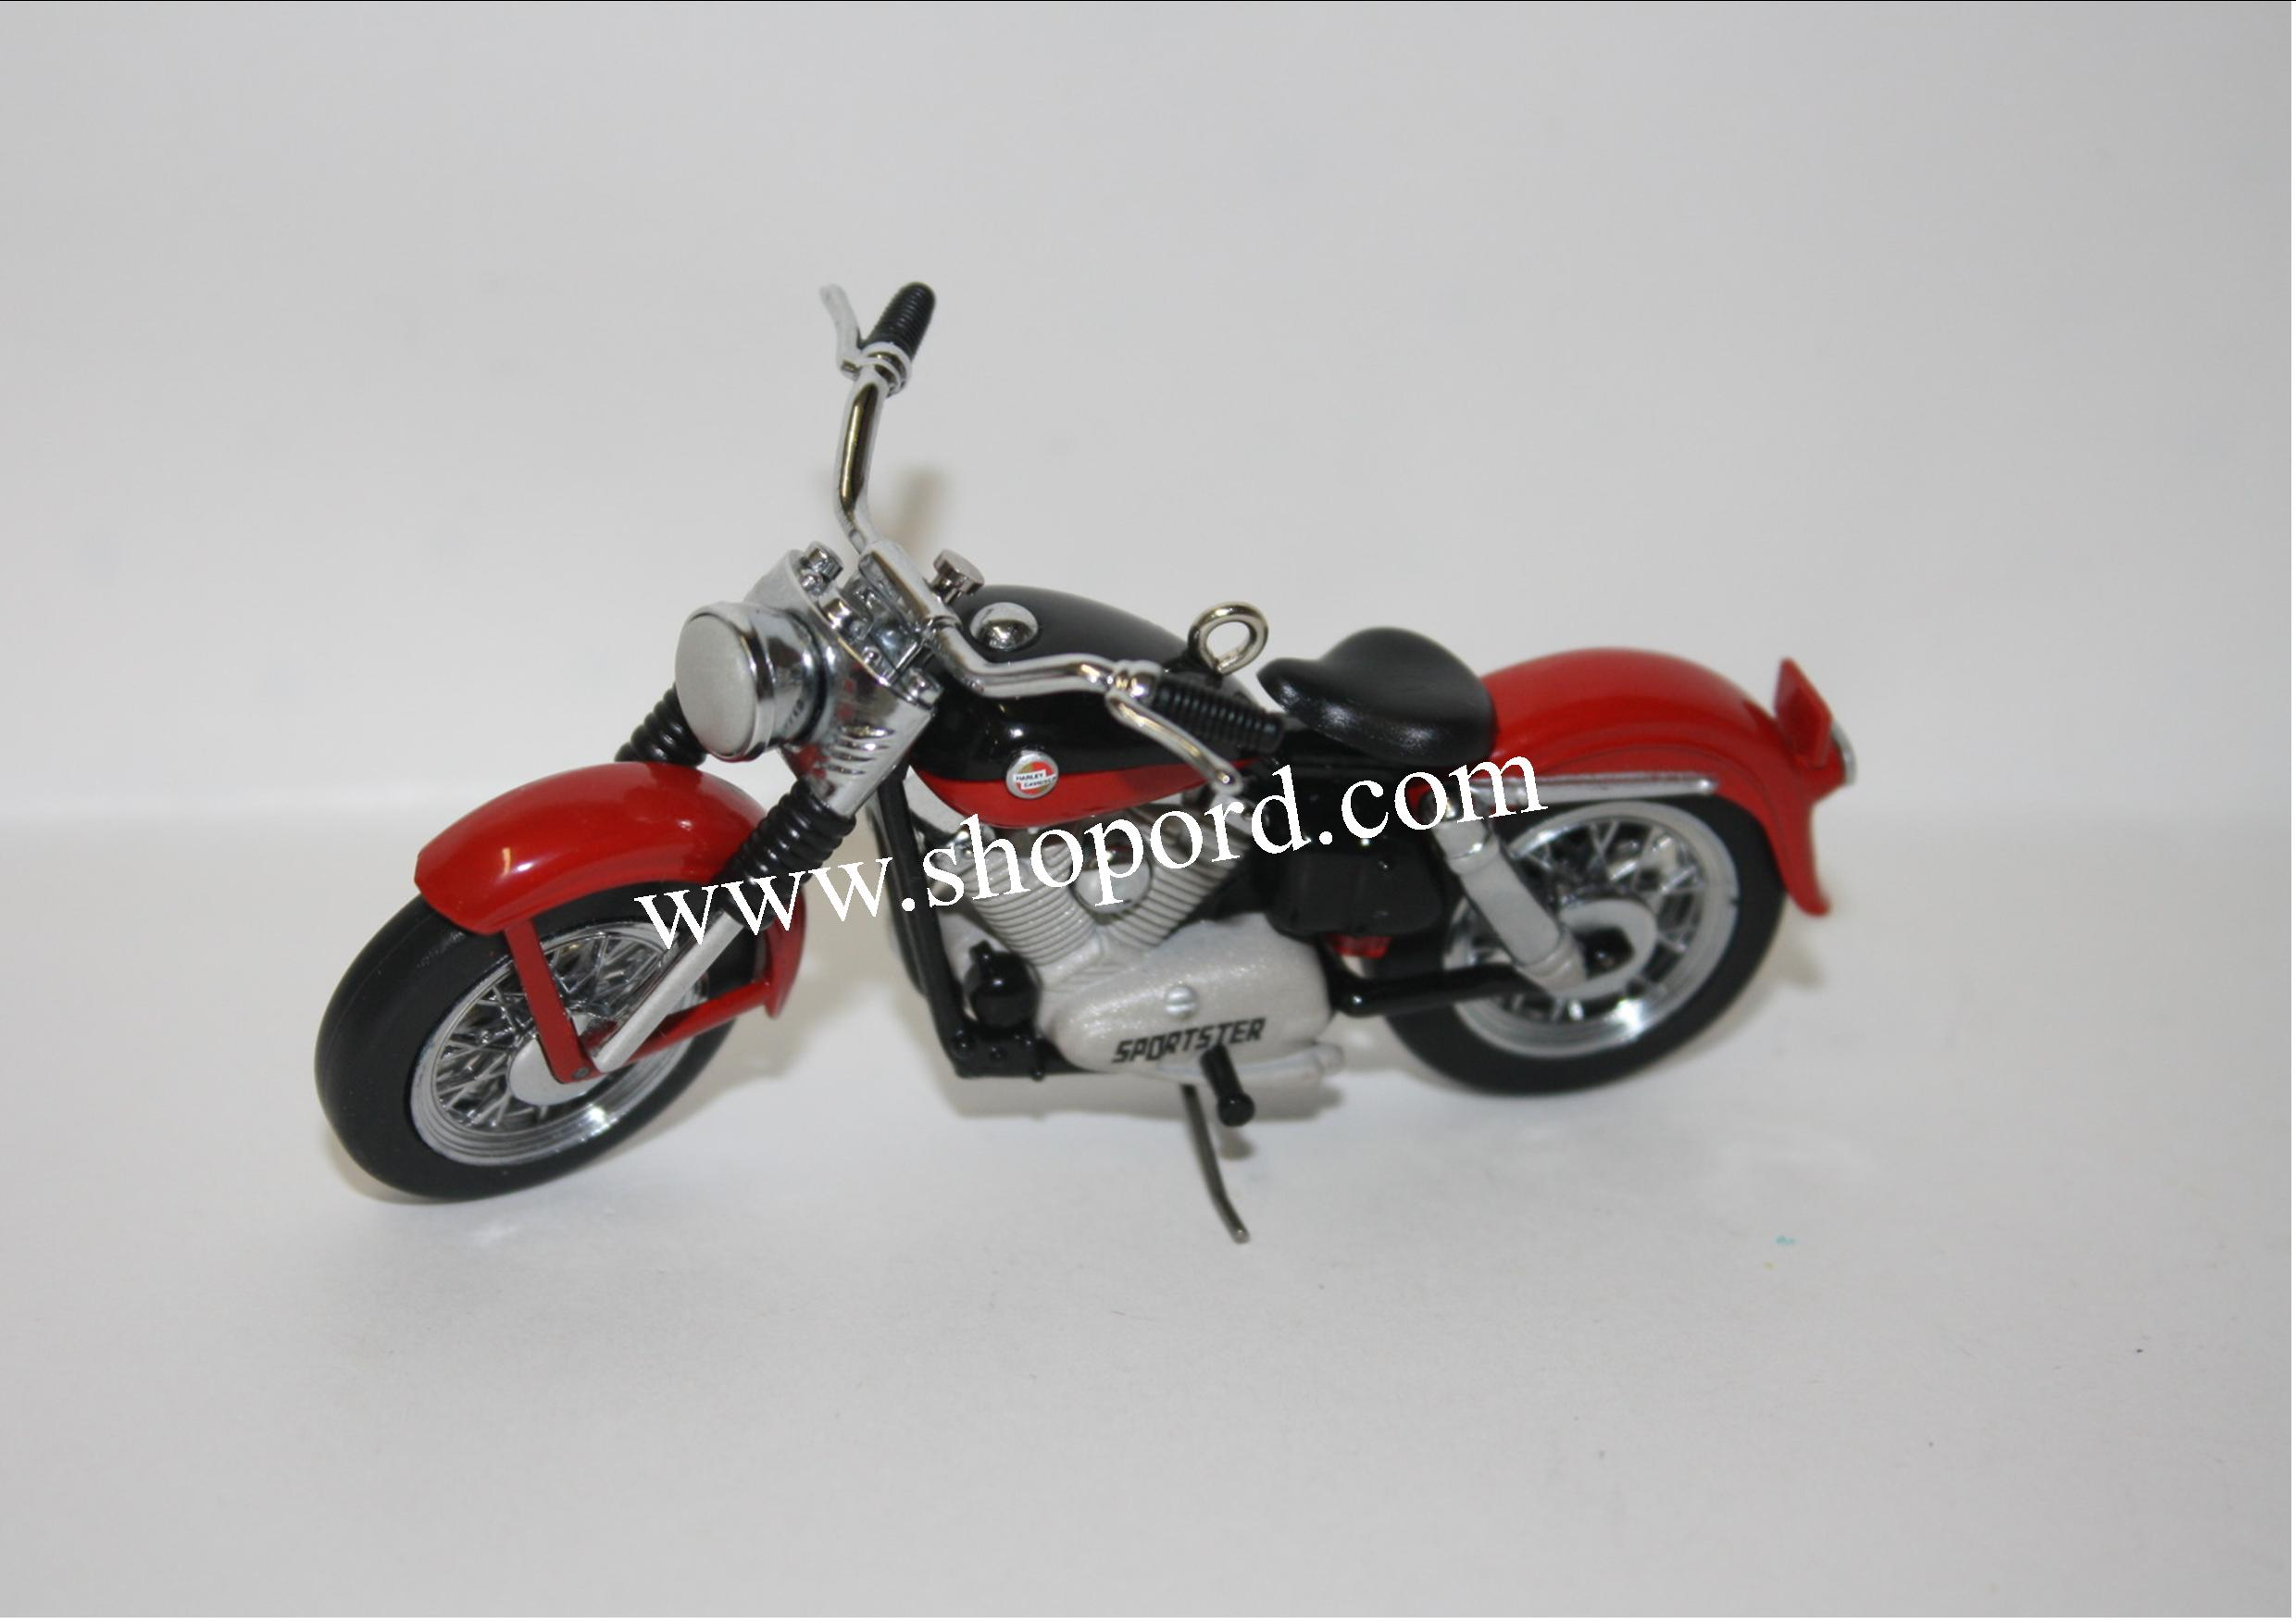 Hallmark 2001 XL 1957 Sportster 3rd In The Harley-Davidson Motorcycle Milestones Series QX8125 Damaged Box